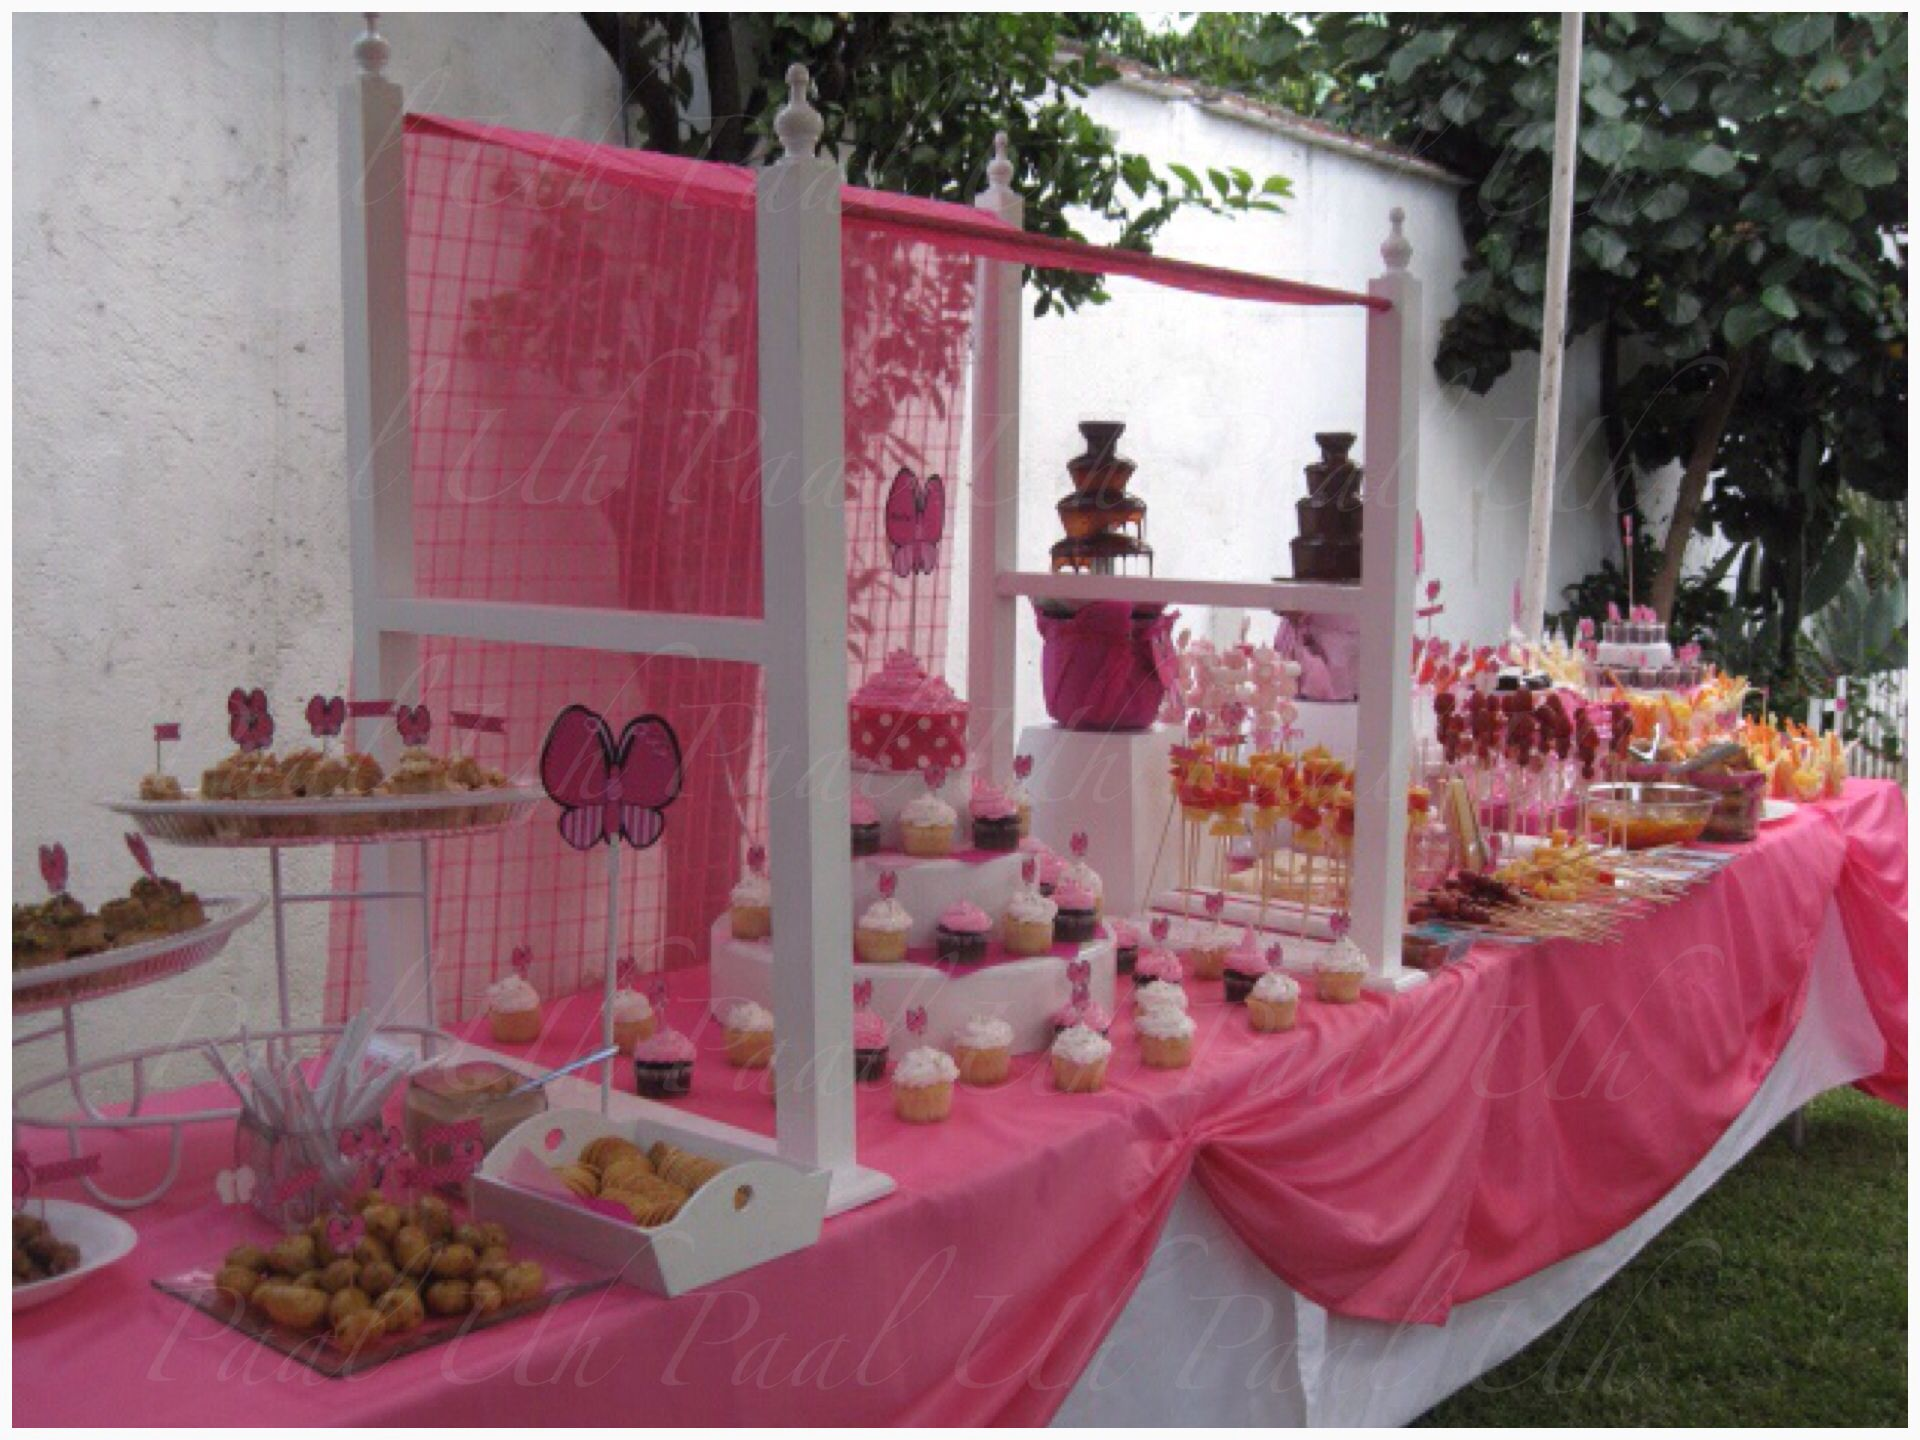 Great Paal Uh. Mesas De Postres U0026 Snacku0027s. Baby Shower, Fuente De Chocolate U0026